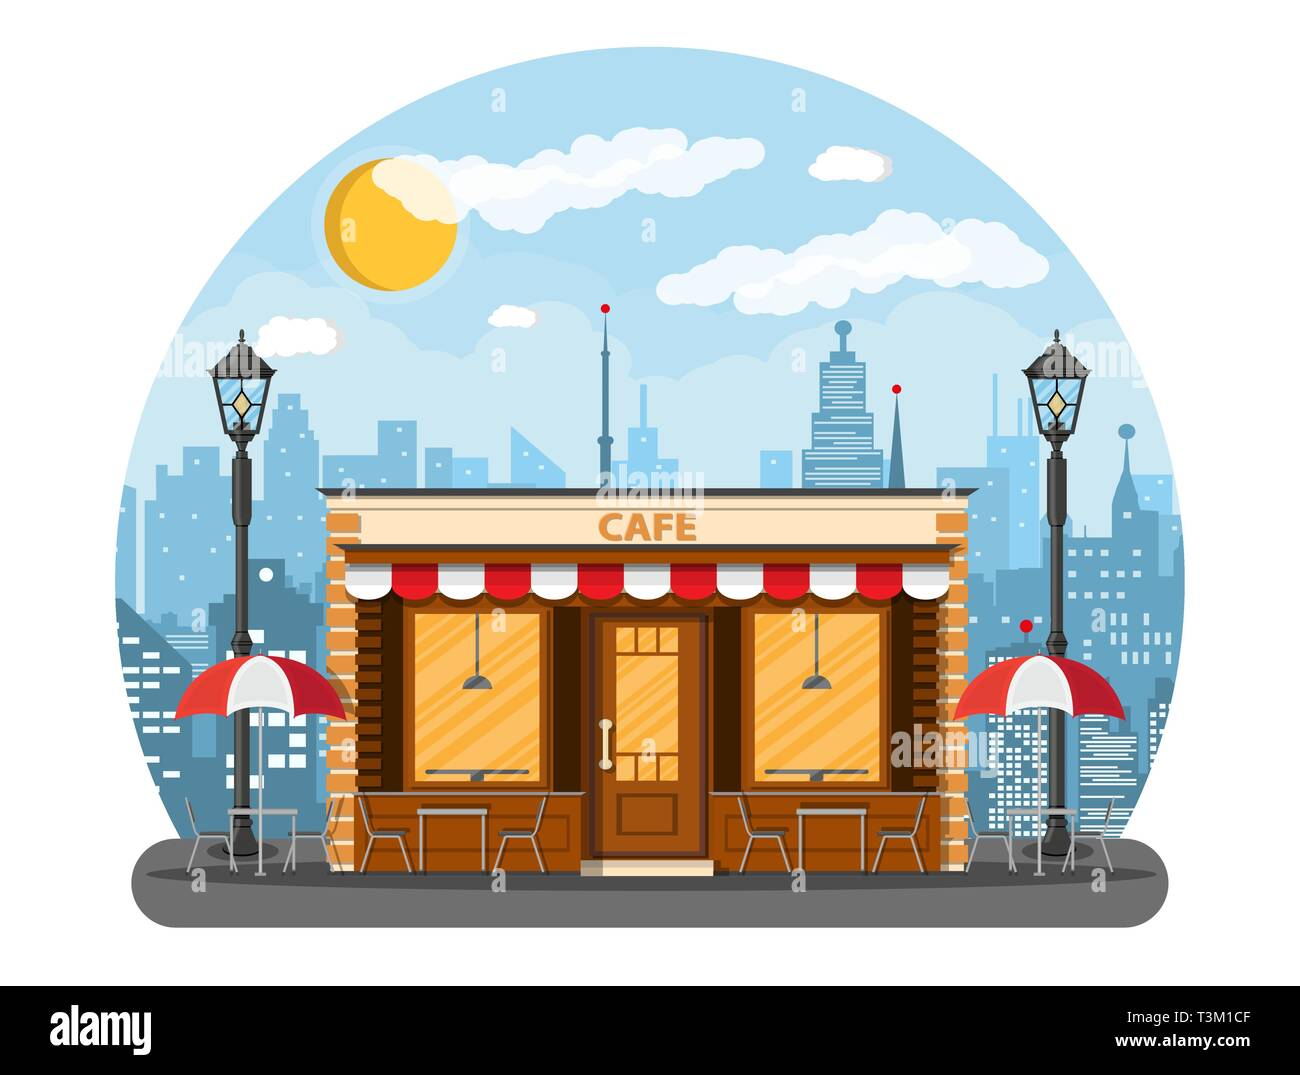 Cafe Shop Exterior Street Restraunt Building Cityscape Buildings Sun Clouds Vector Illustration In Flat Style Stock Vector Image Art Alamy